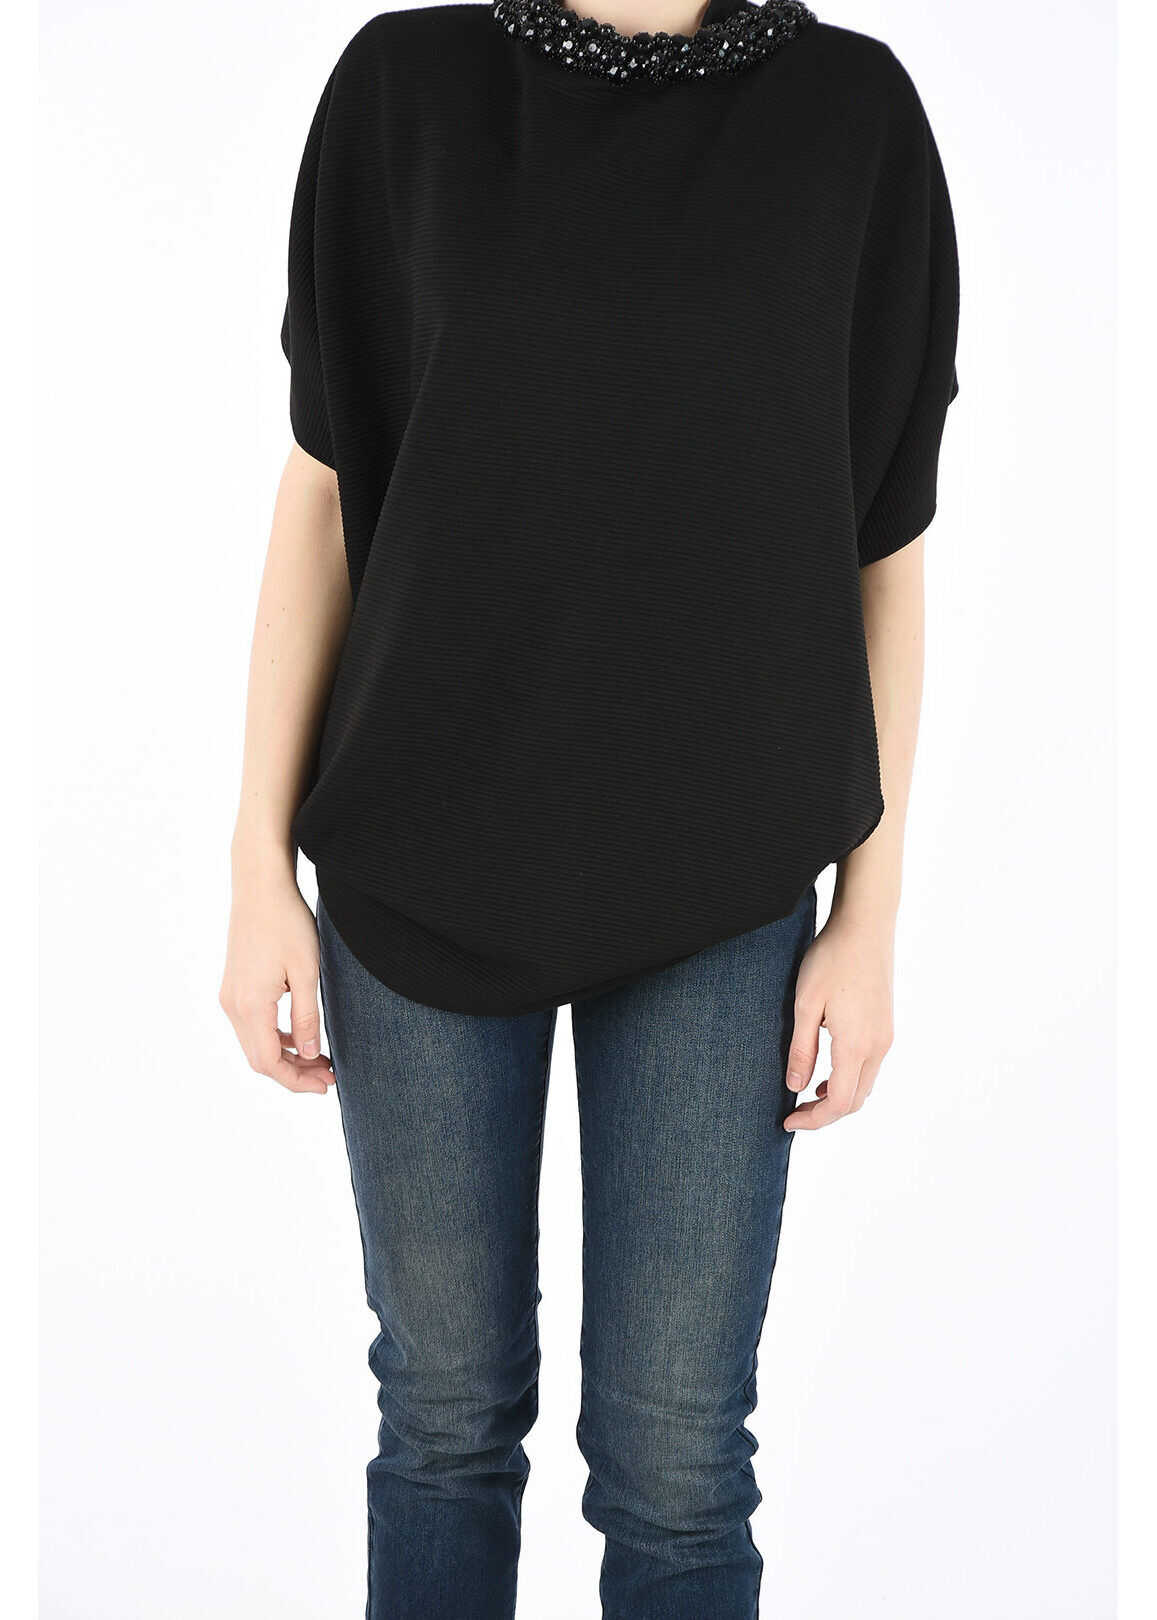 Armani COLLEZIONI Top with Jewel Details BLACK